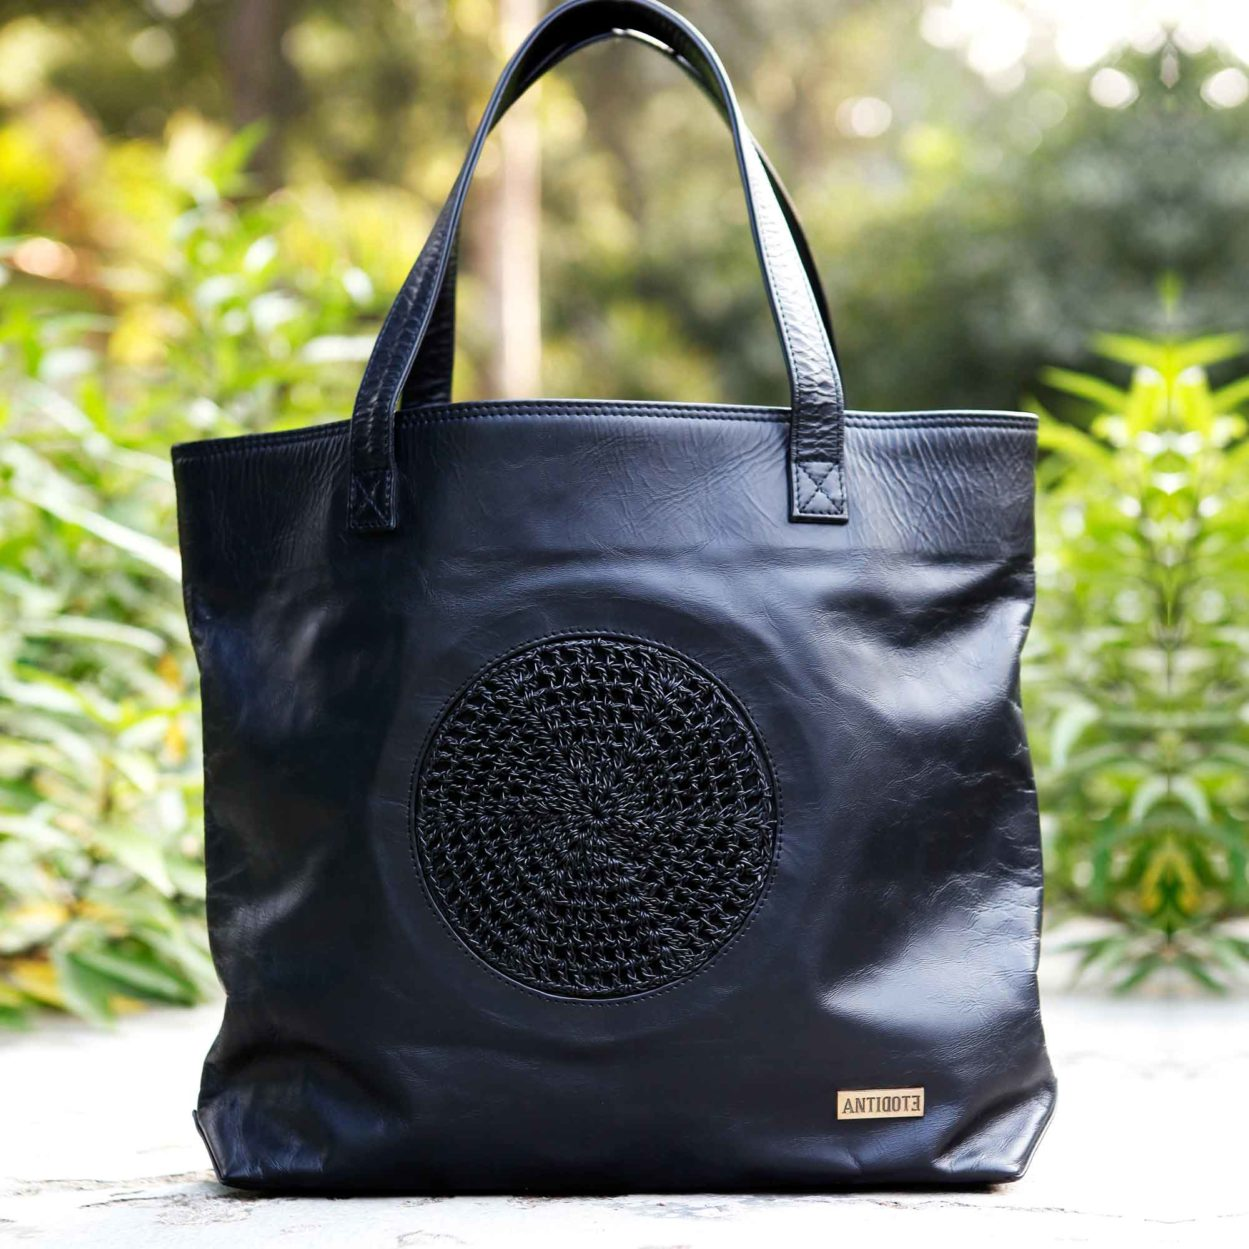 The Chic Carrier black tote